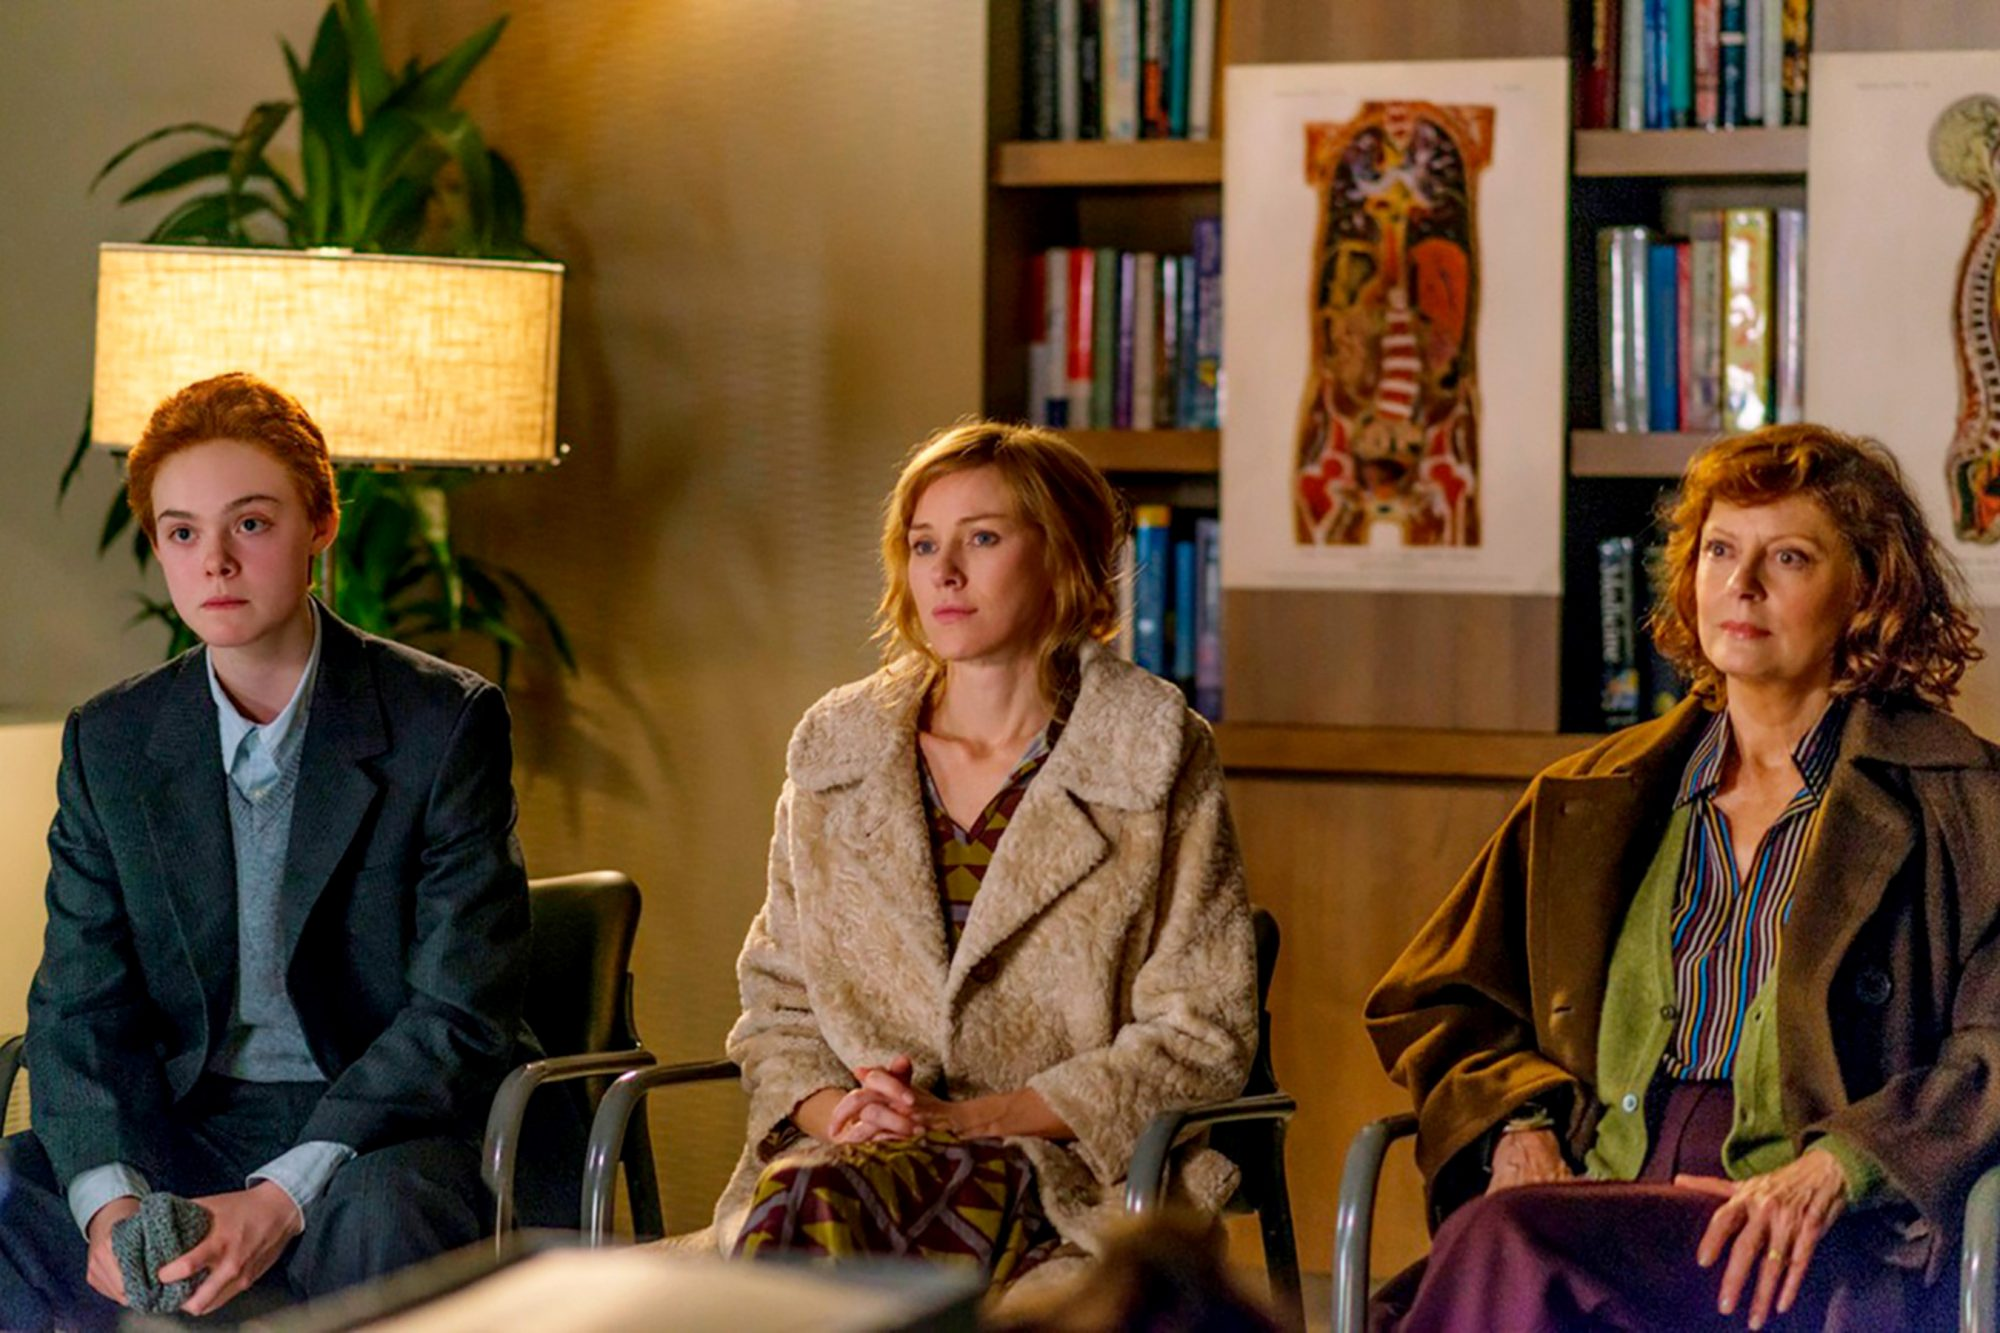 ABOUT RAY, from left: Elle Fanning, Naomi Watts, Susan Sarandon, 2015. ©The Weinstein